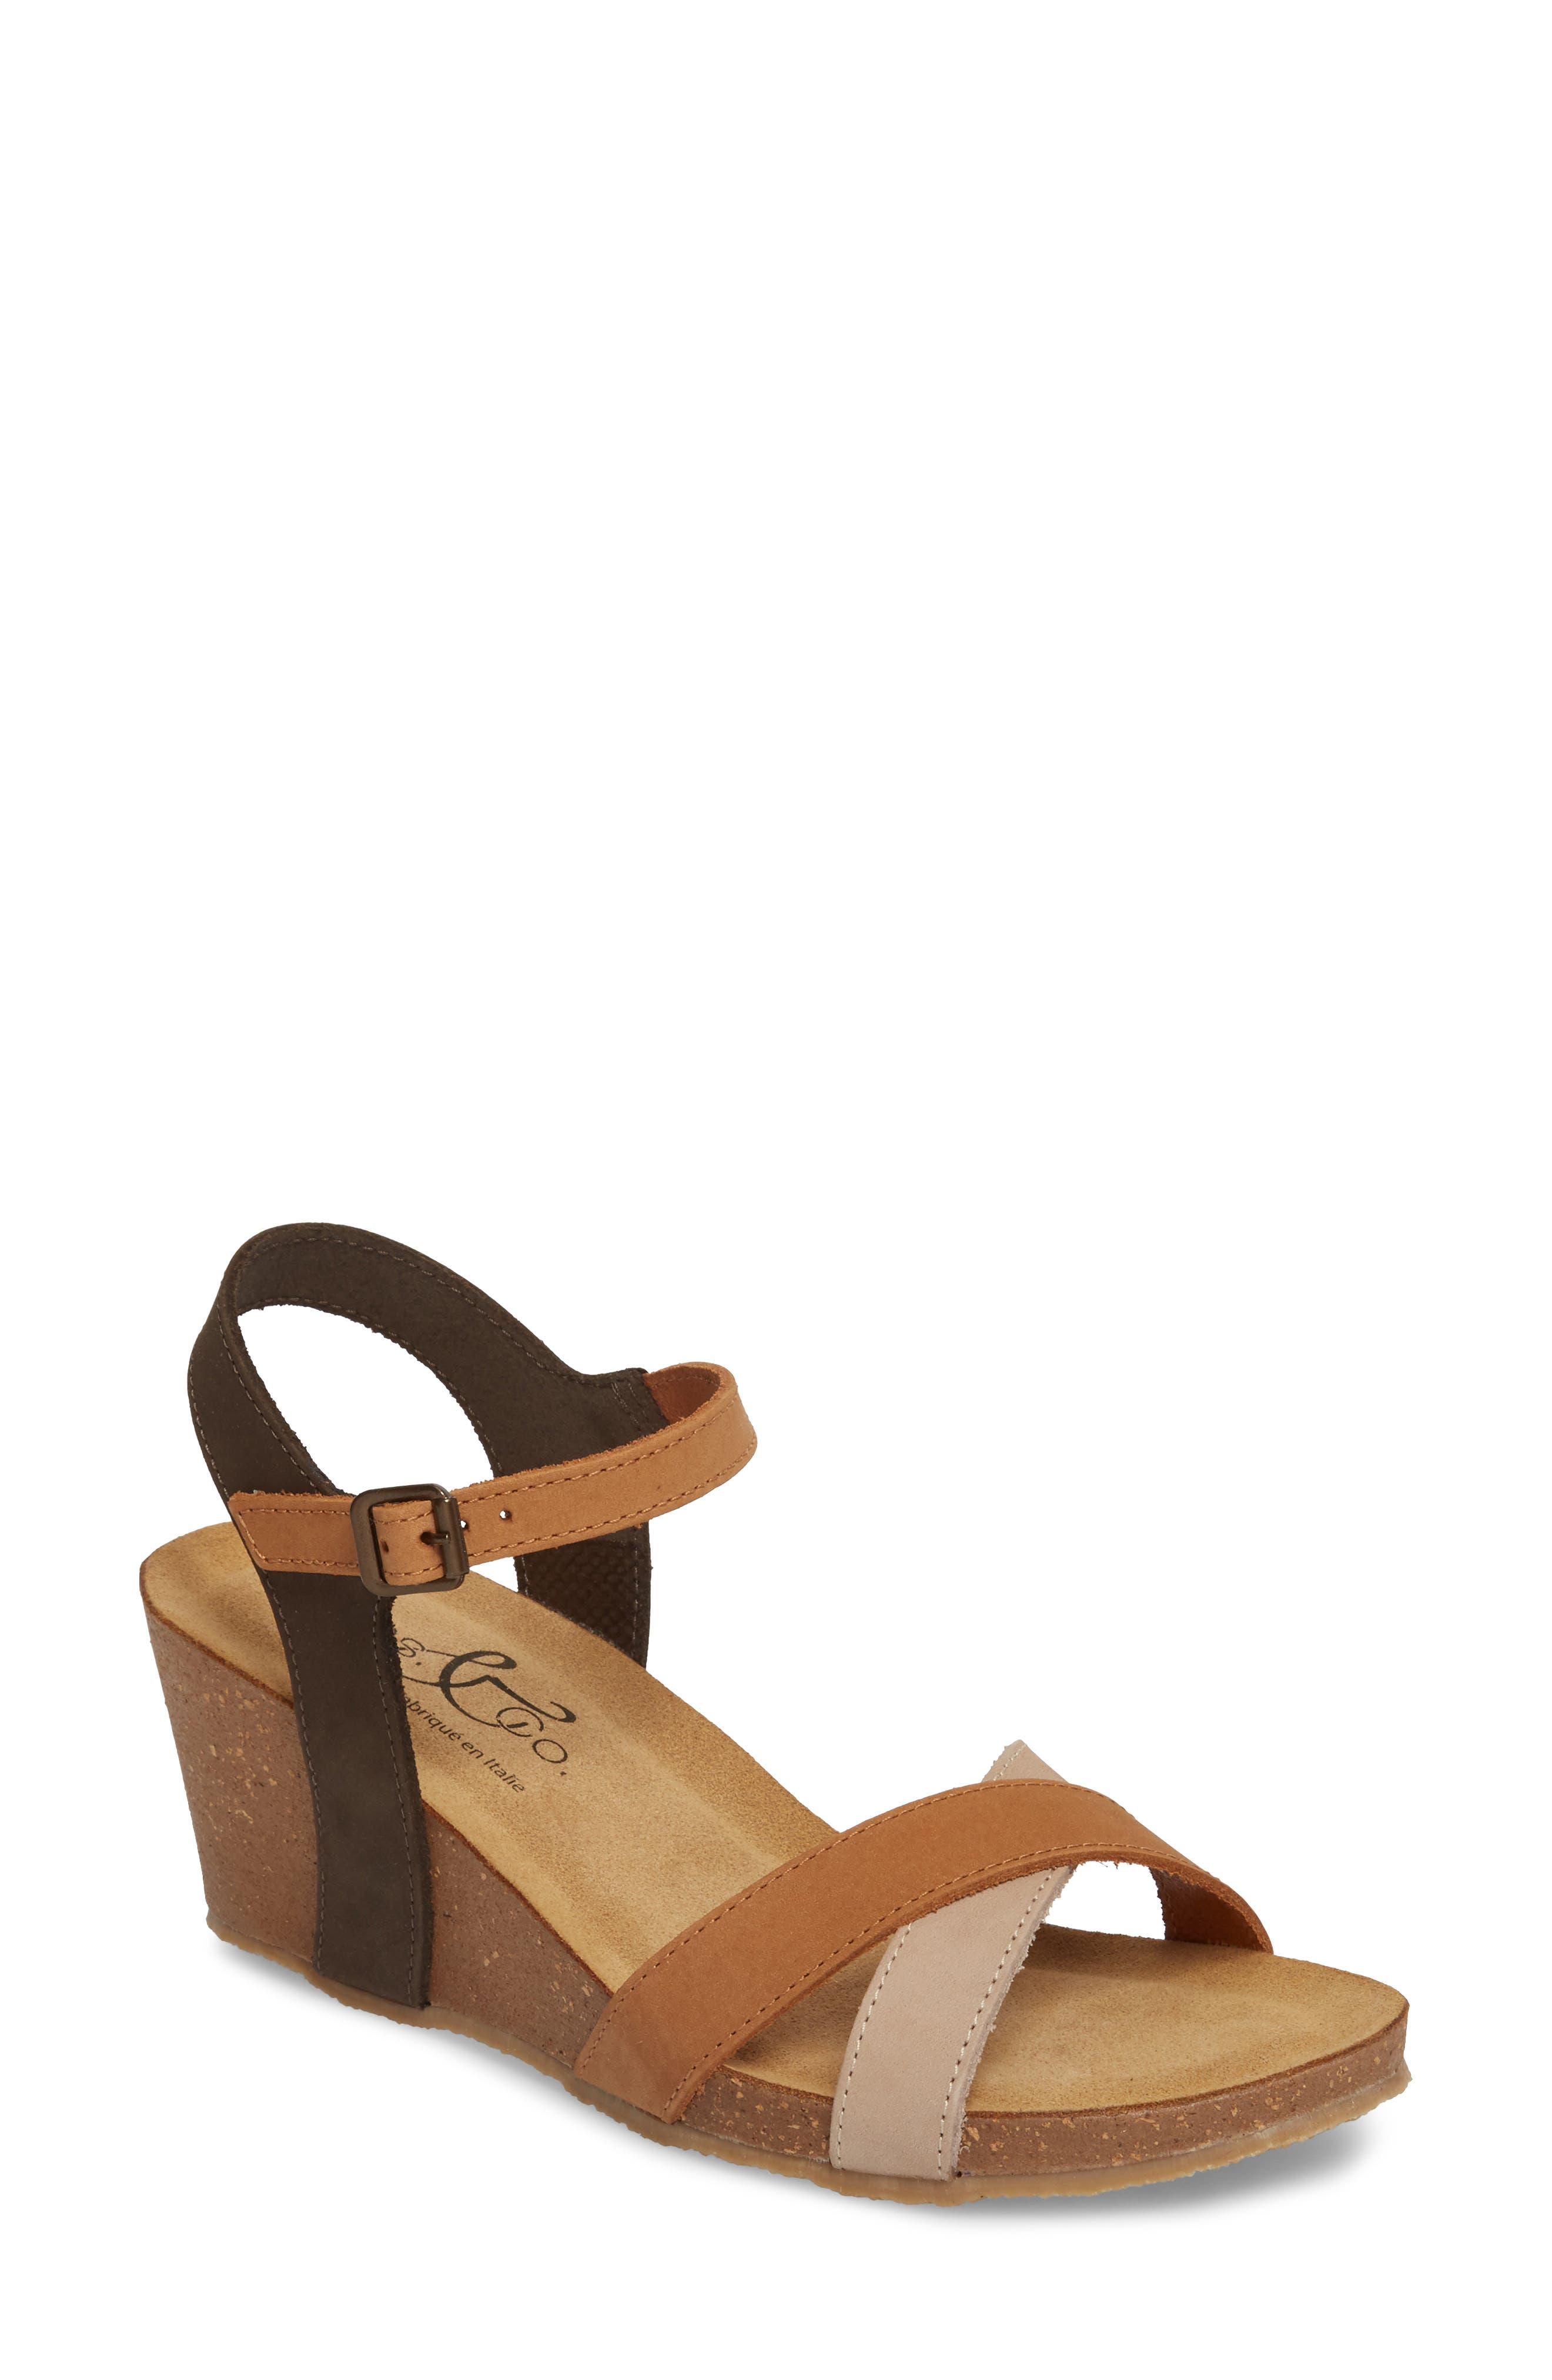 Bos. & Co. Lucca Wedge Sandal (Women)